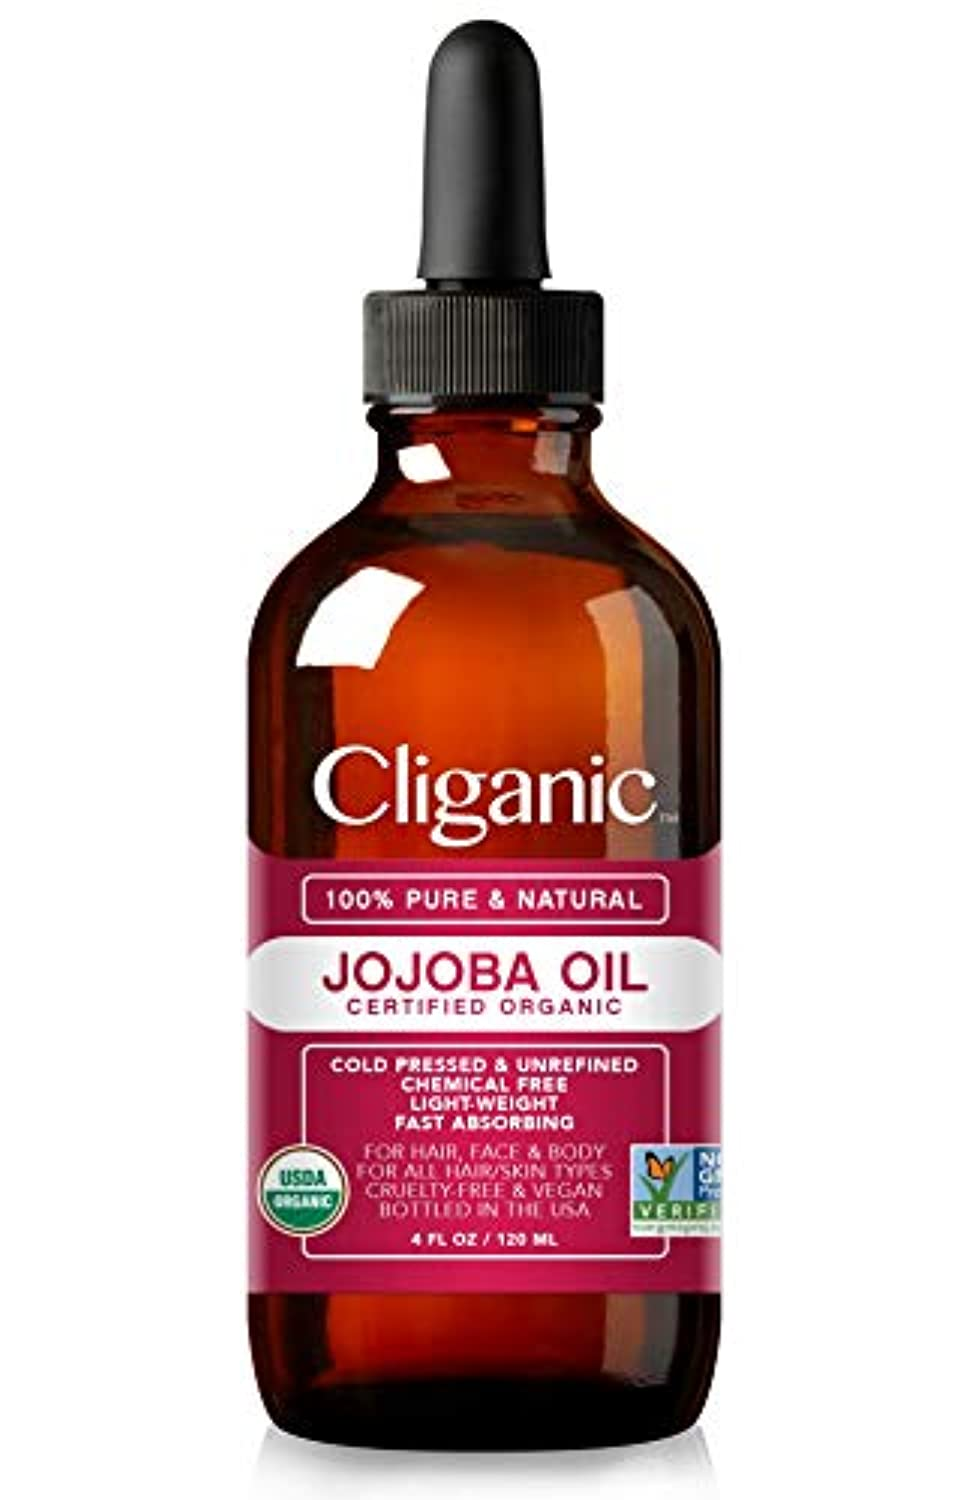 Classier: Buy Cliganic Cliganic USDA Organic Jojoba Oil, 100% Pure (4oz Large) | Natural Cold Pressed Unrefined Hexane Free Oil for Hair & Face | Base Carrier Oil | Cliganic 90 Days Warranty